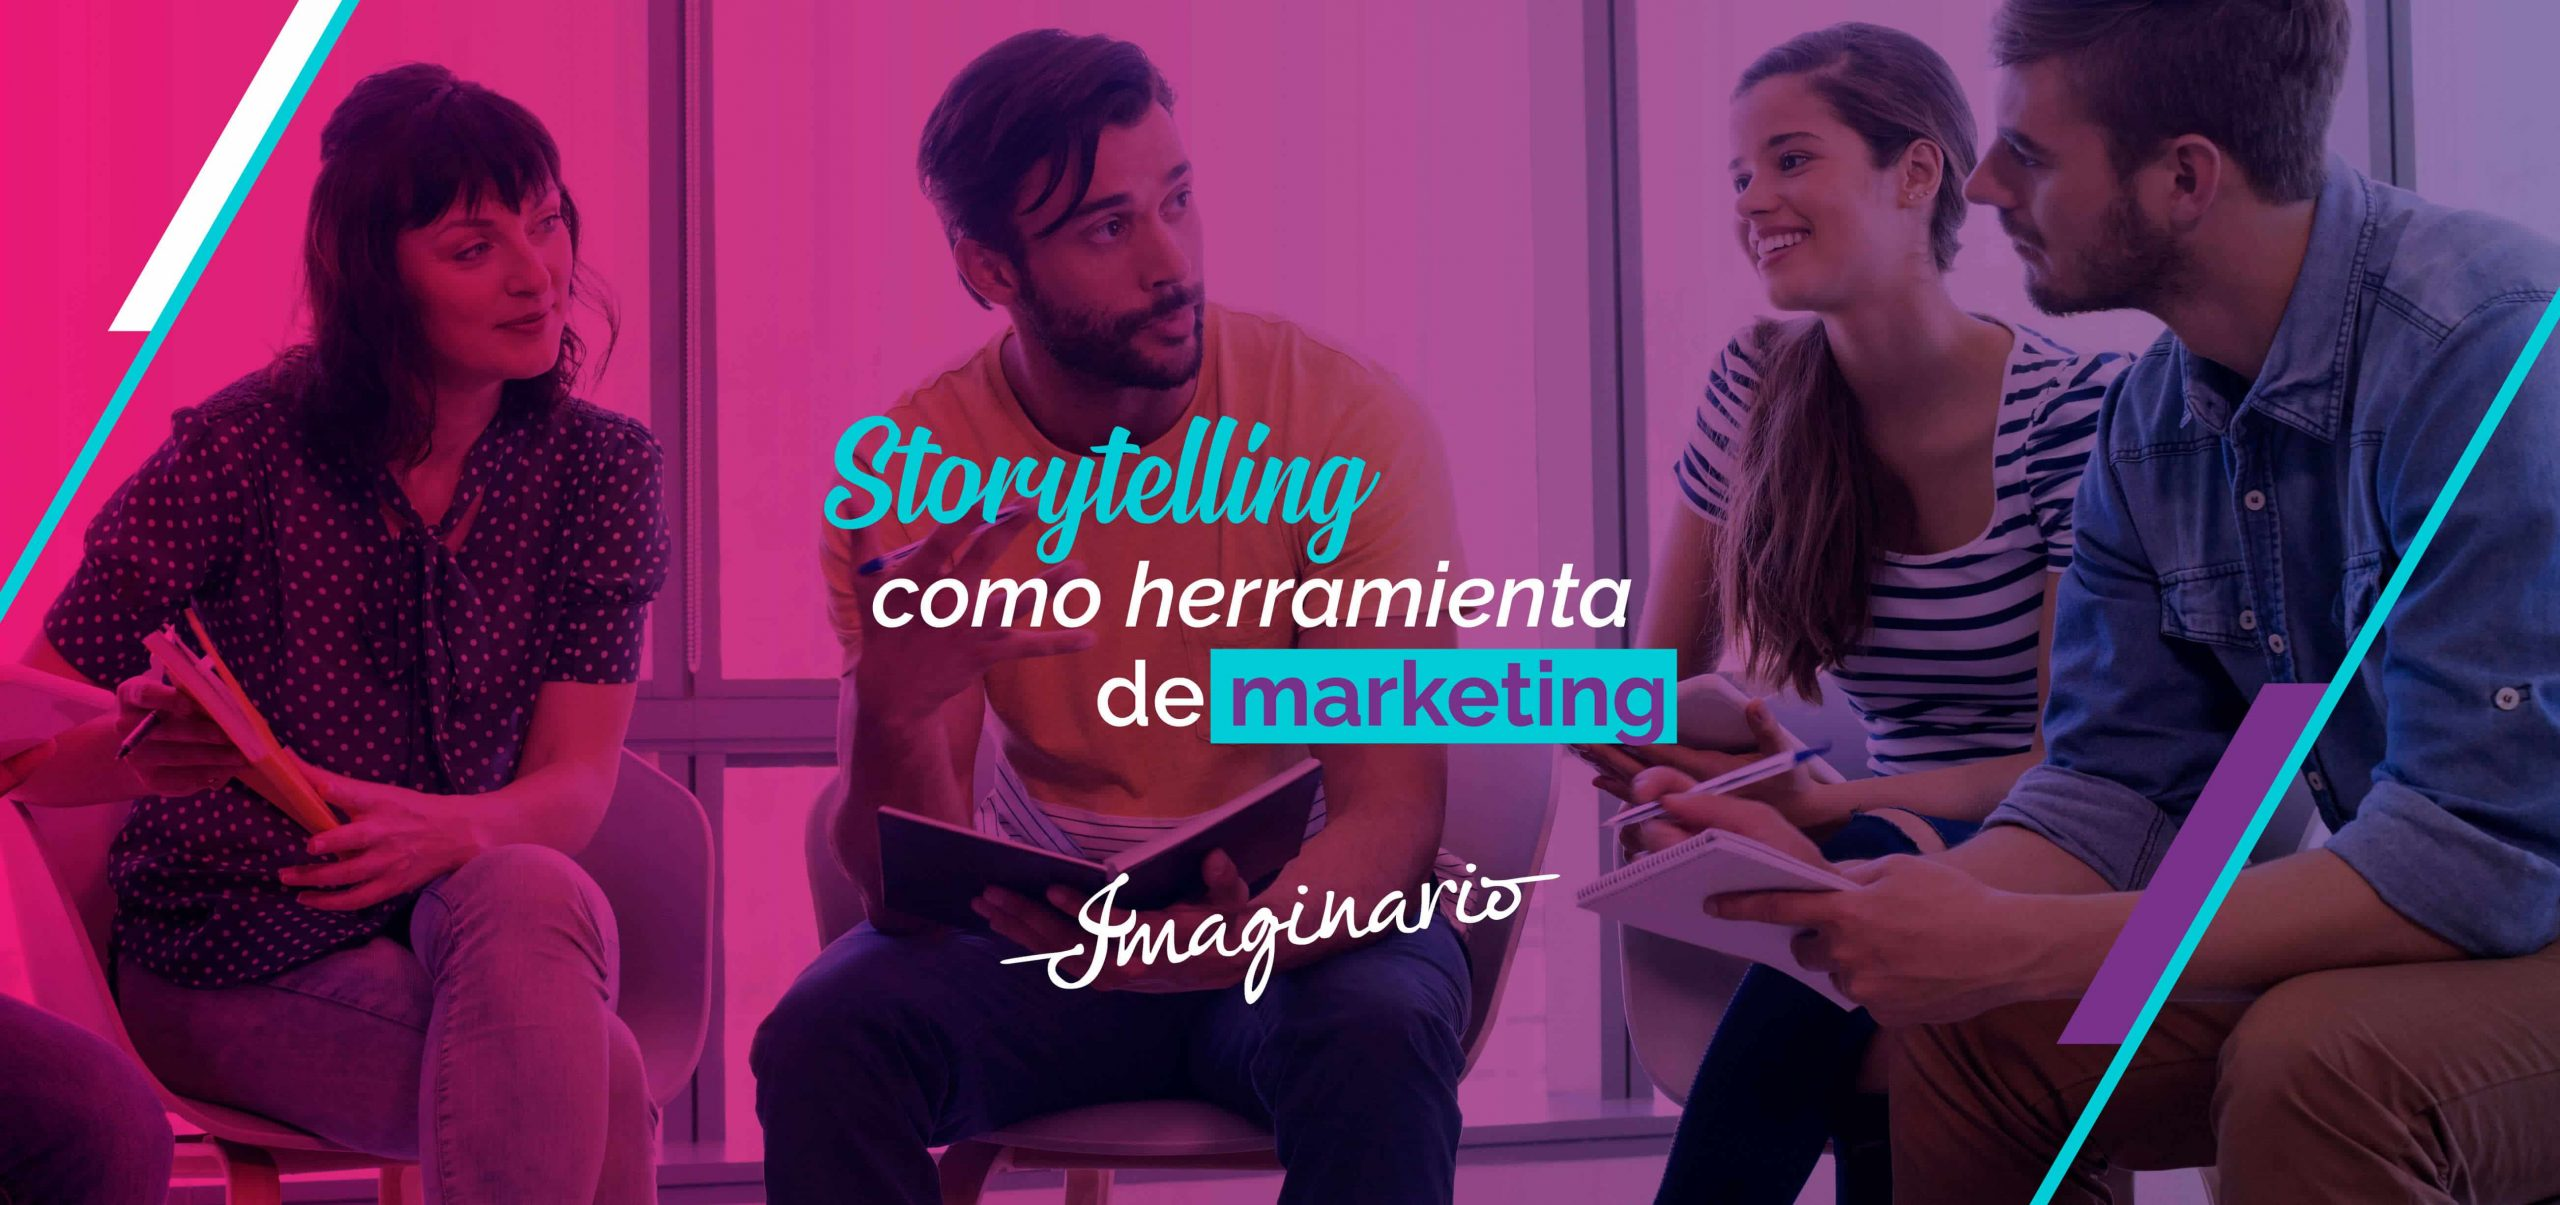 Storytelling como herramienta de marketing